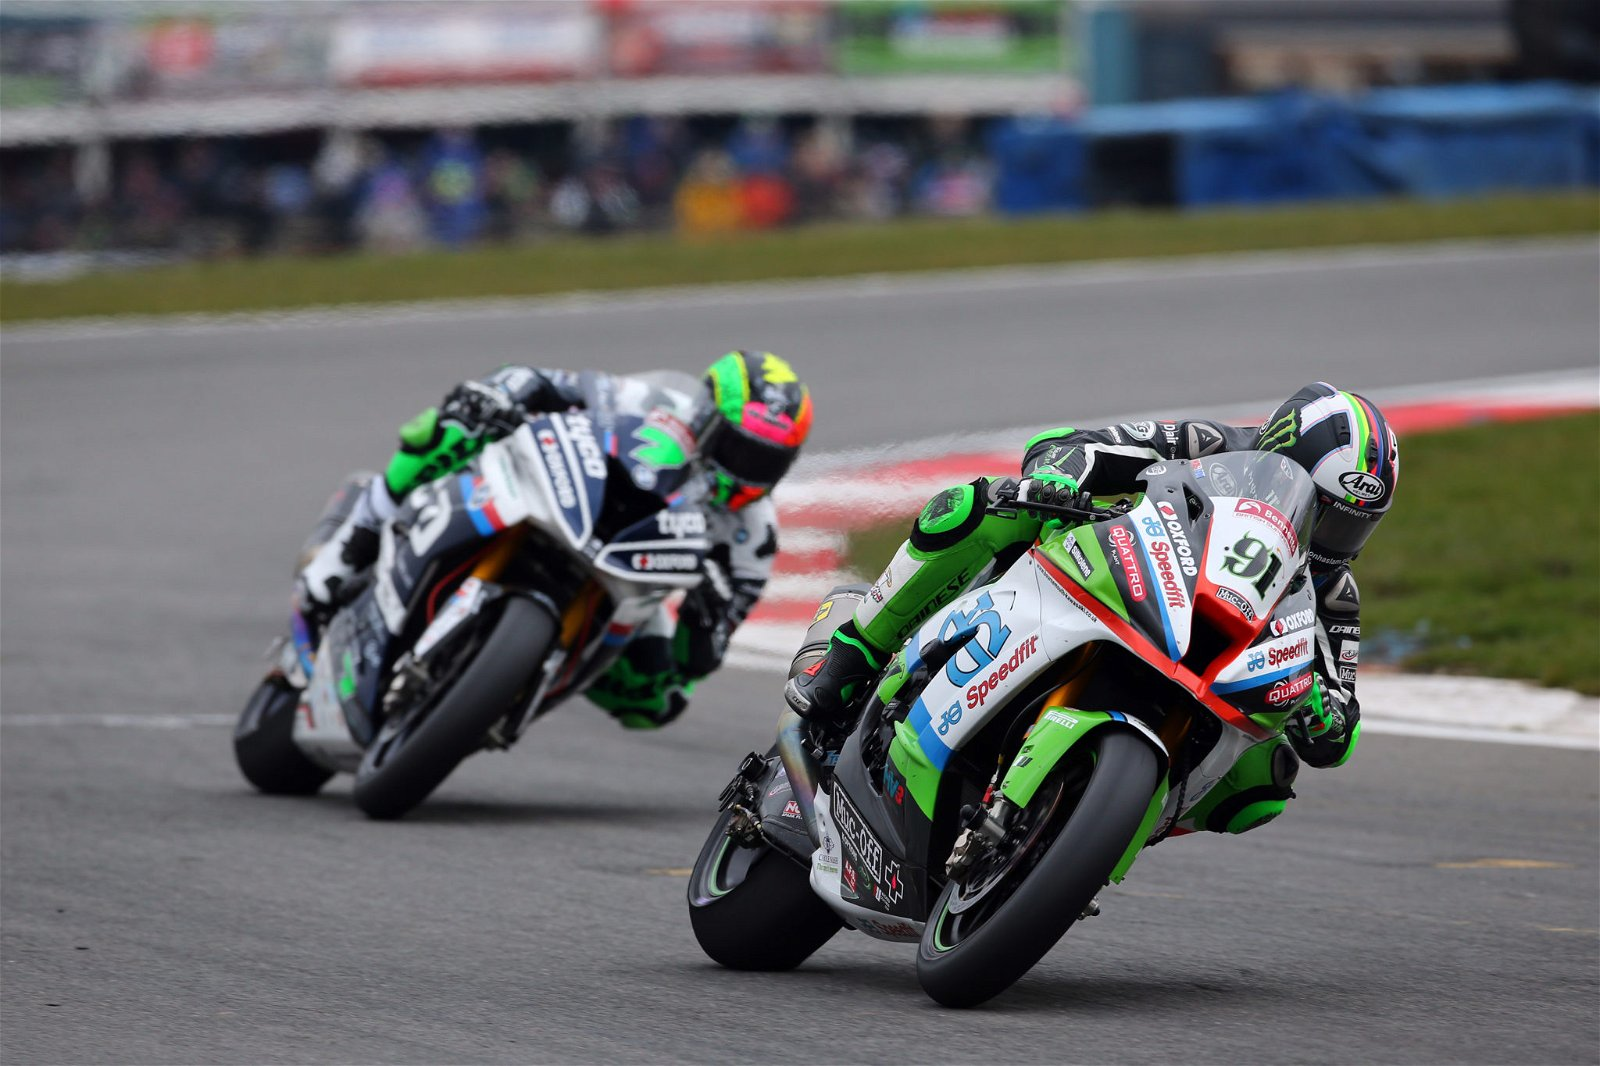 Leon Haslam in action at Donington Park